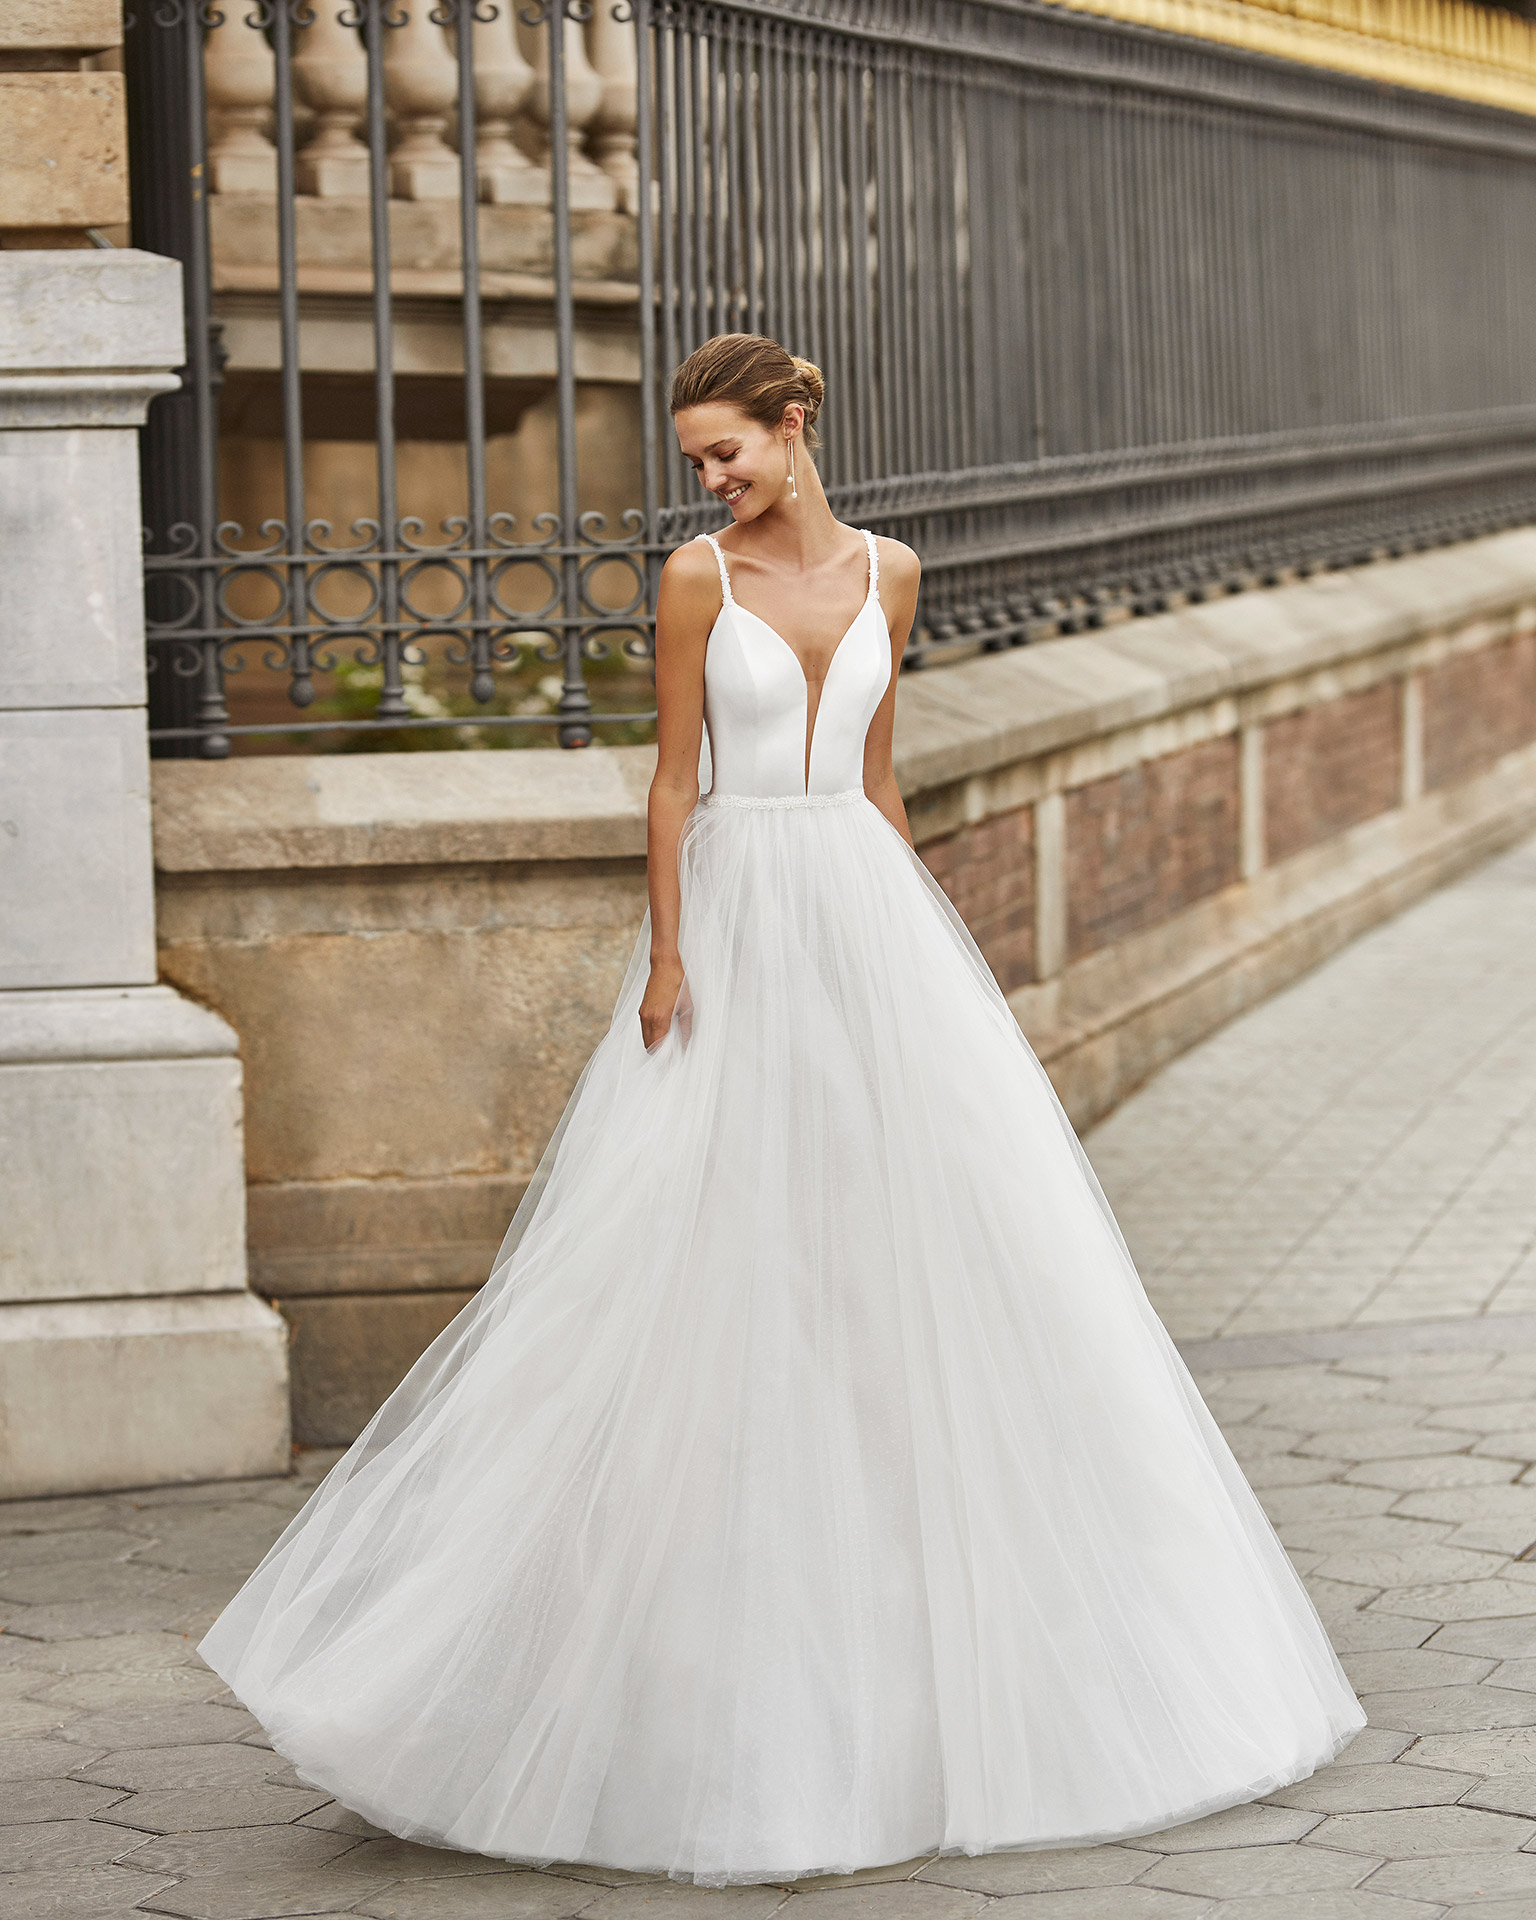 Princess wedding dress, tulle and dot tulle underskirt, crepe and beaded straps and waist. Deep-plunge neckline and low back. 2022  Collection.